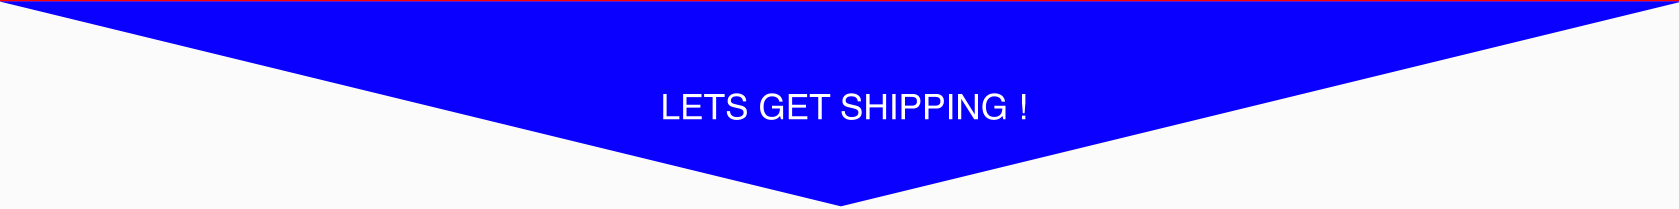 let shipping